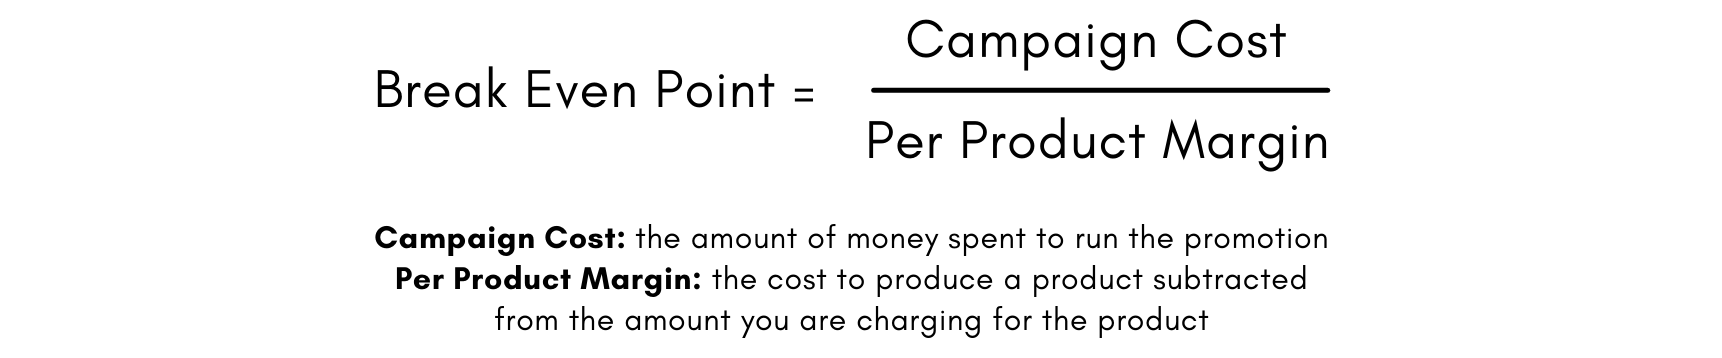 Formula to determine your Break Even Point: Overall Campaign Cost divided by Per Product Margin.